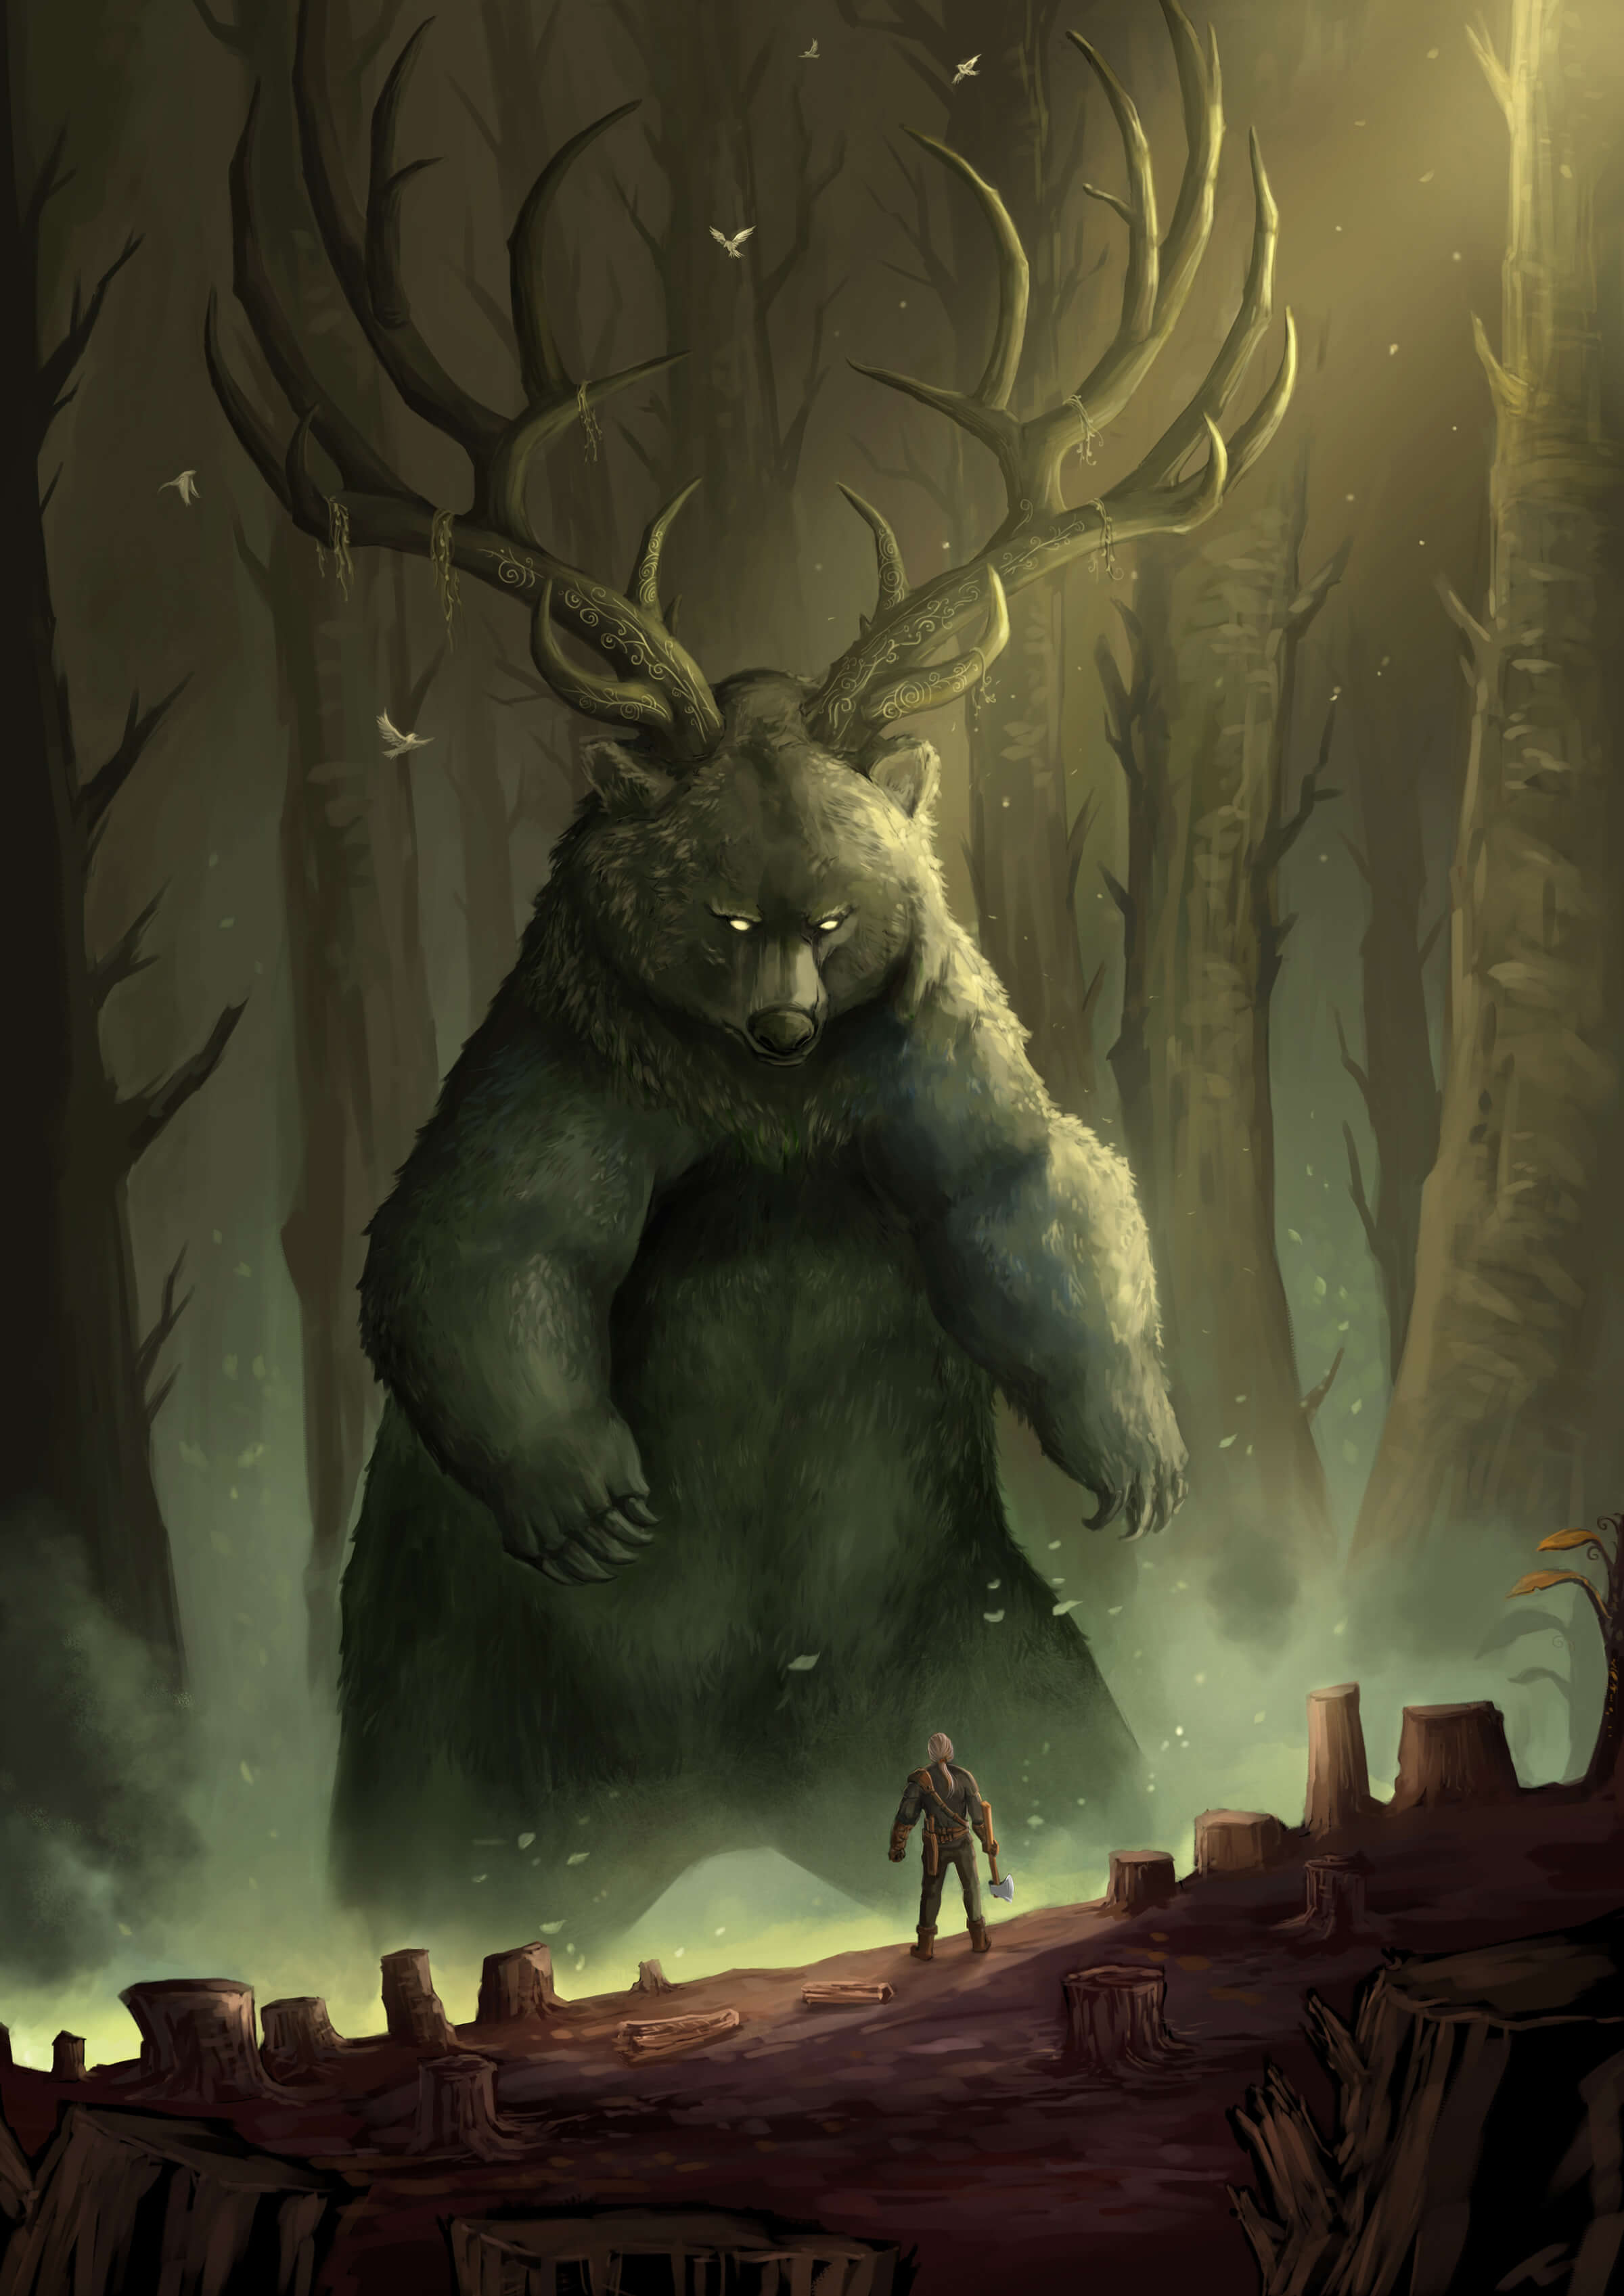 A man with an ax surrounded by tree stumps stands before an enormous upright bear with massive antlers in a dimly lit glade.